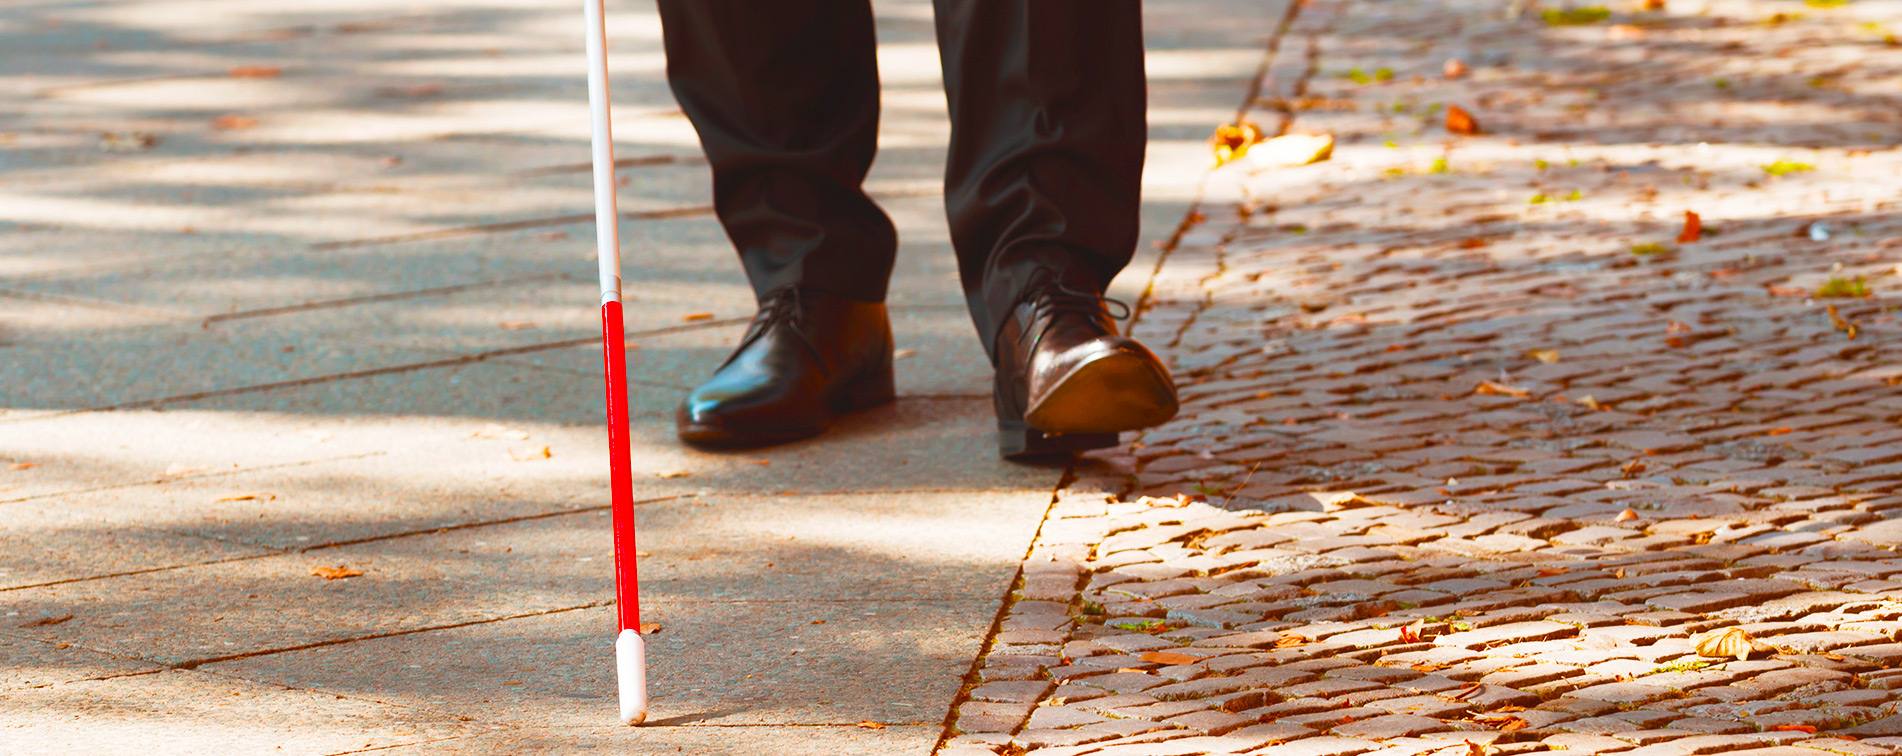 Slider Prevention & Awareness - feet walking with white cane